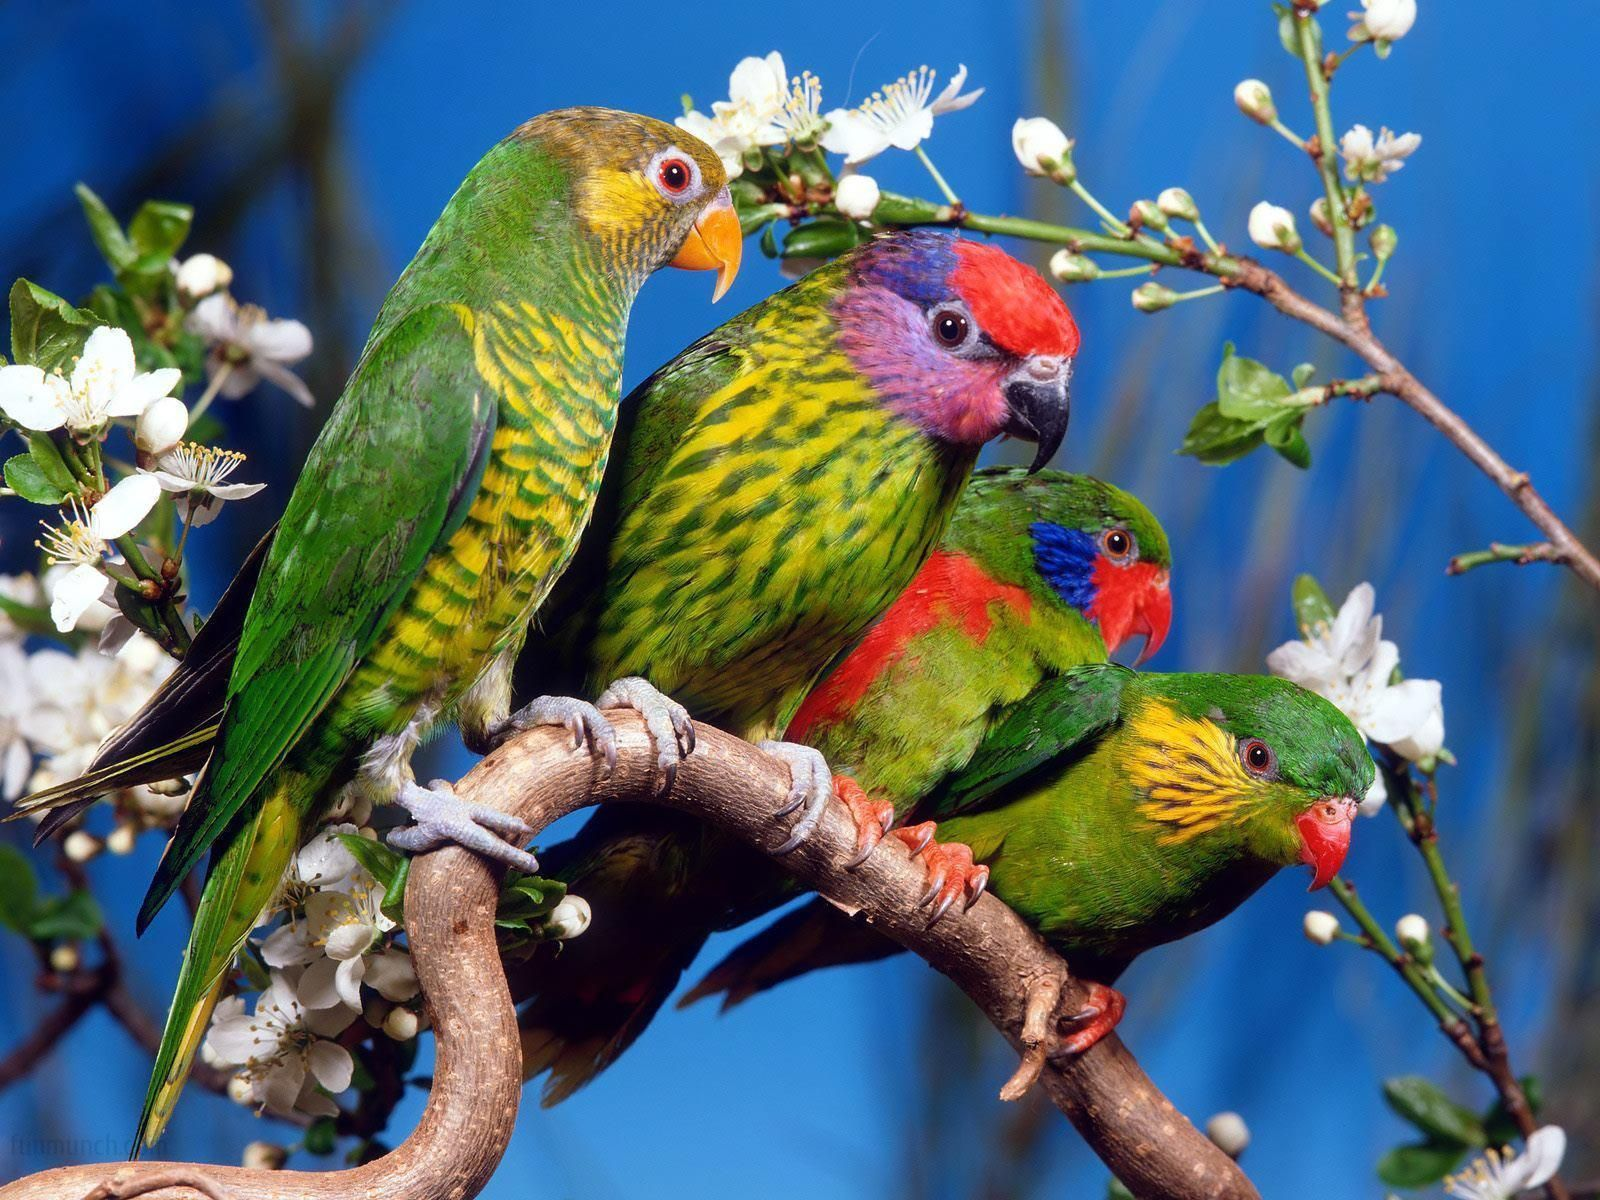 wallpapers love birds - wallpaper cave | photography outdoor nature